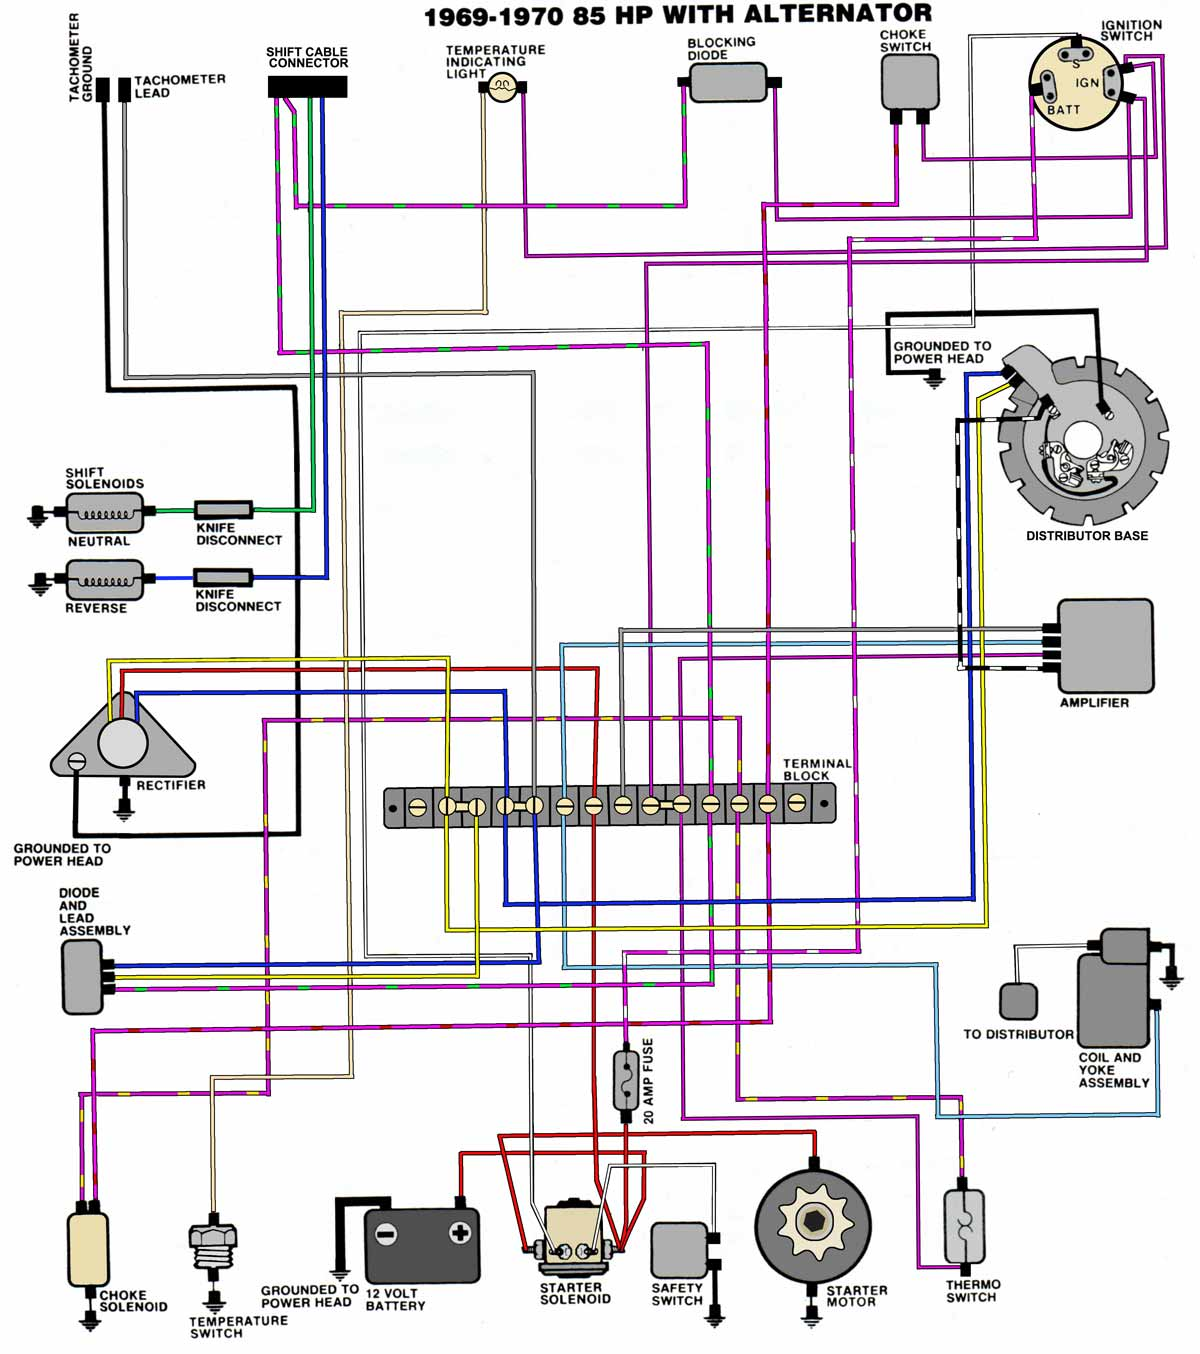 69_70_V4 1969 85hp ignition wiring help page 1 iboats boating forums omc wiring harness diagram at gsmx.co